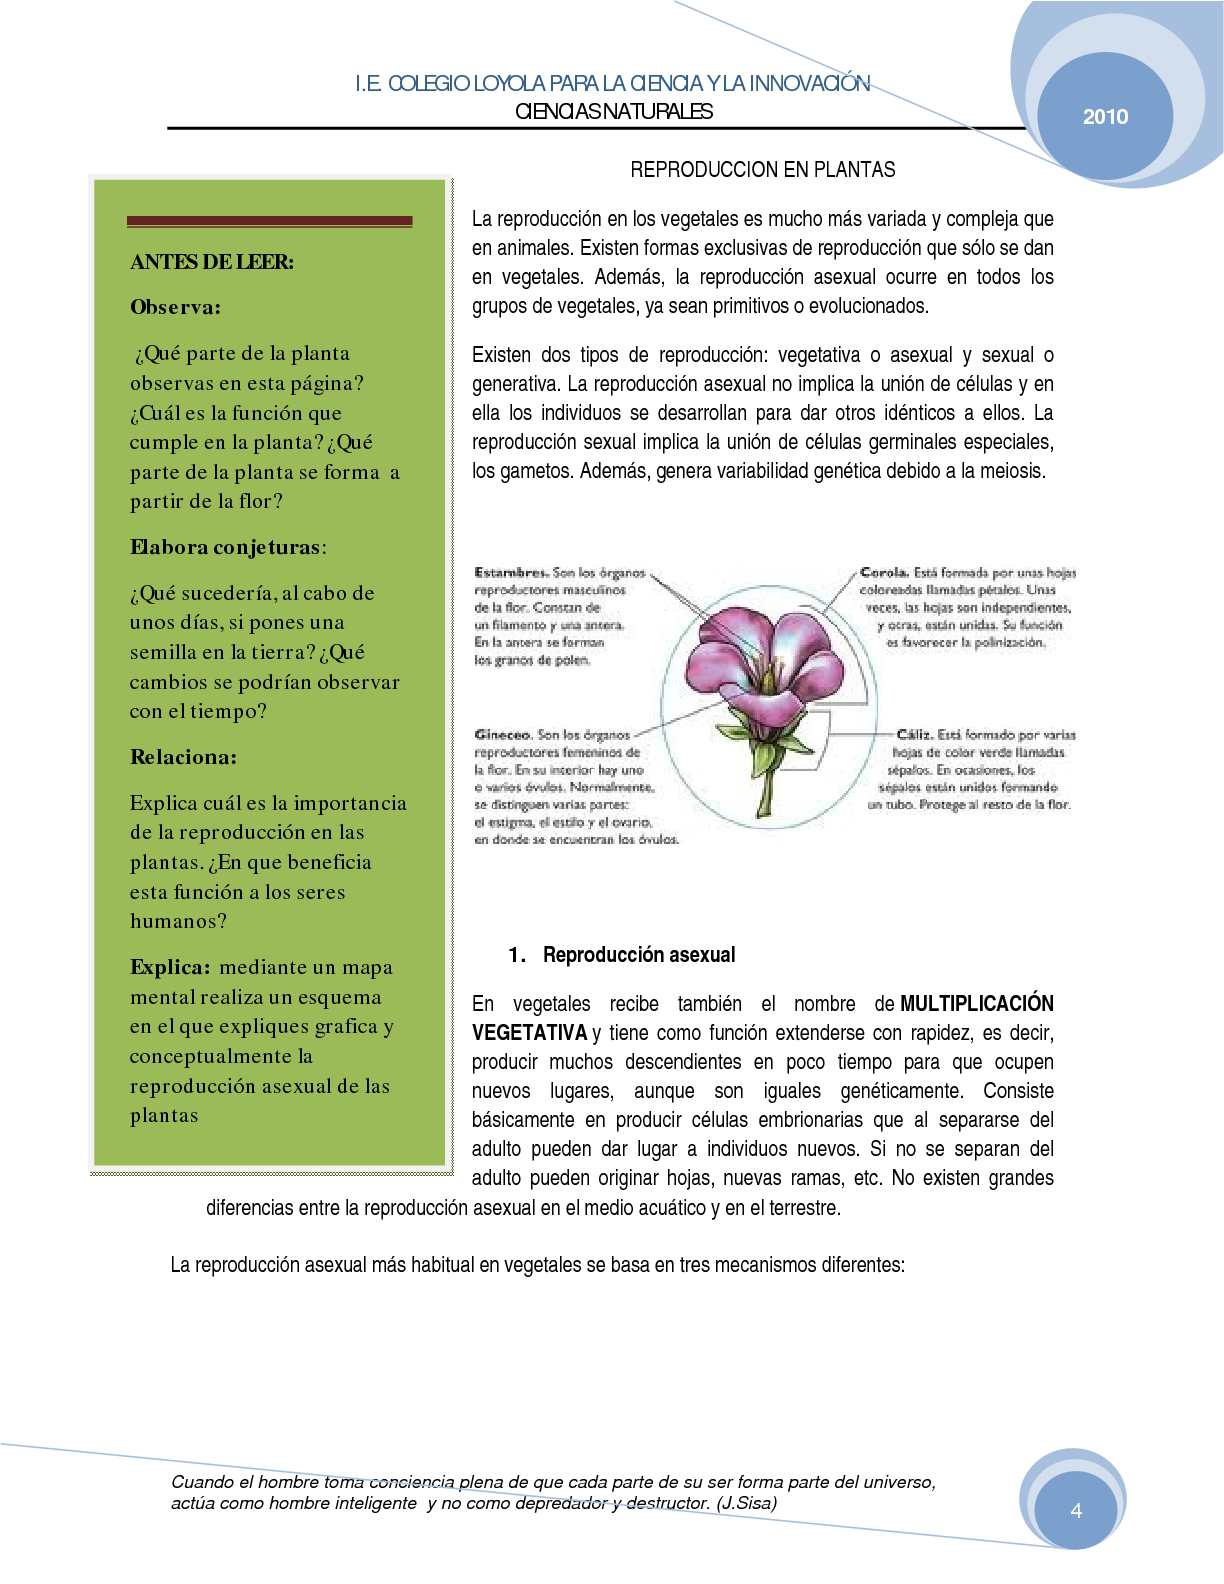 Hepaticas reproduccion asexual